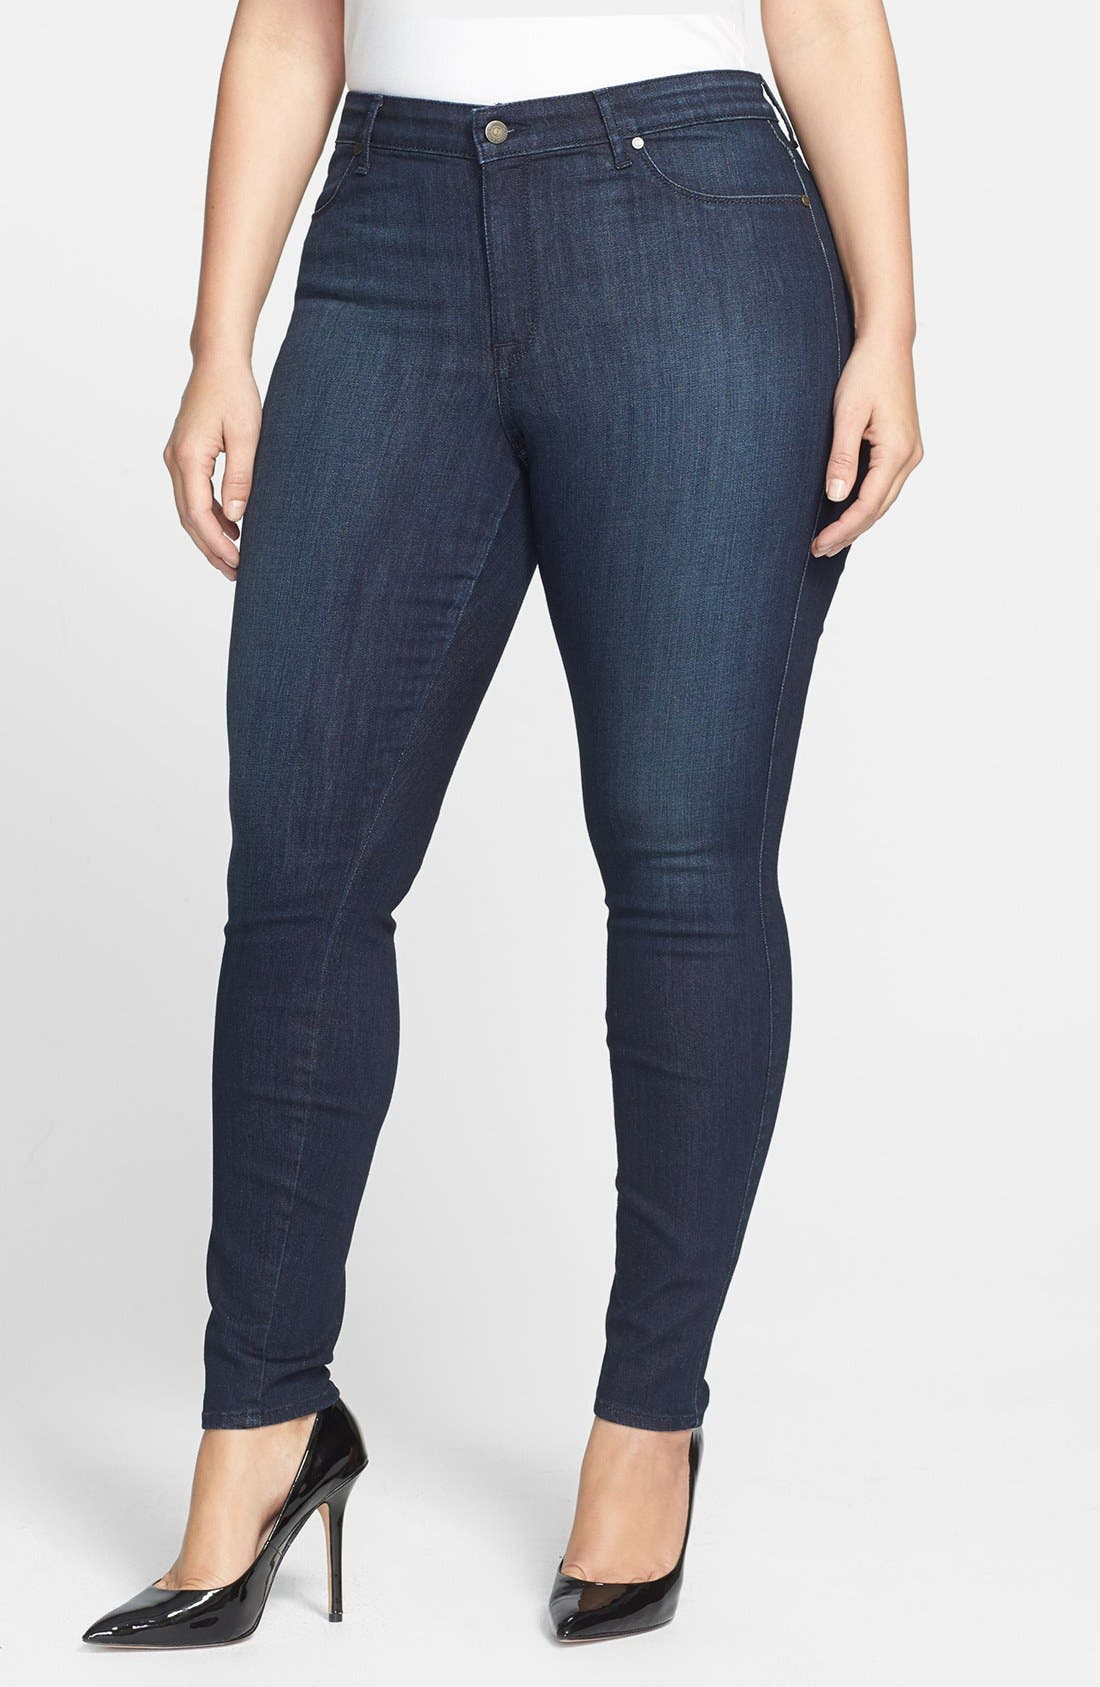 Main Image - CJ by Cookie Johnson 'Joy' Legging Style Stretch Jeans (Kahana) (Plus Size)